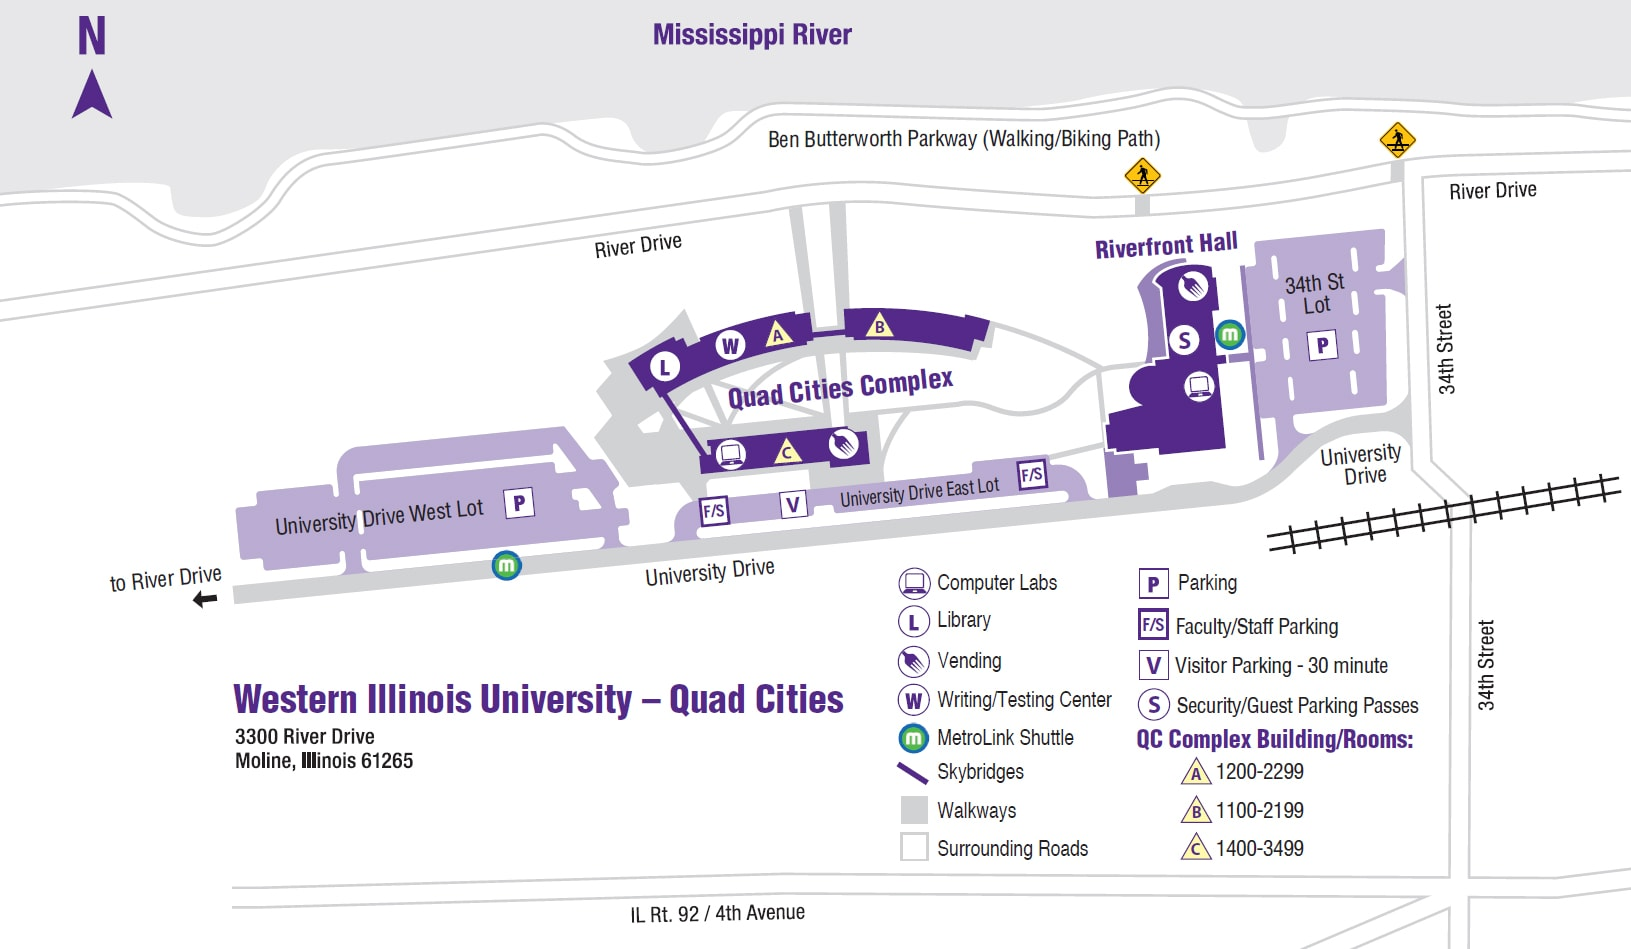 Campus Map - Web Version - Western Illinois University on u of i quad map, chicago state university map, american university quad map, illinois wesleyan map, distances from quad cities map, illinois state geological survey maps, aurora university illinois map, beijing china map, stanford university quad map, illinois state campus, university of chicago area map, illinois wesleyan university, western illinois university quad map, university of illinois map, illinois river map,